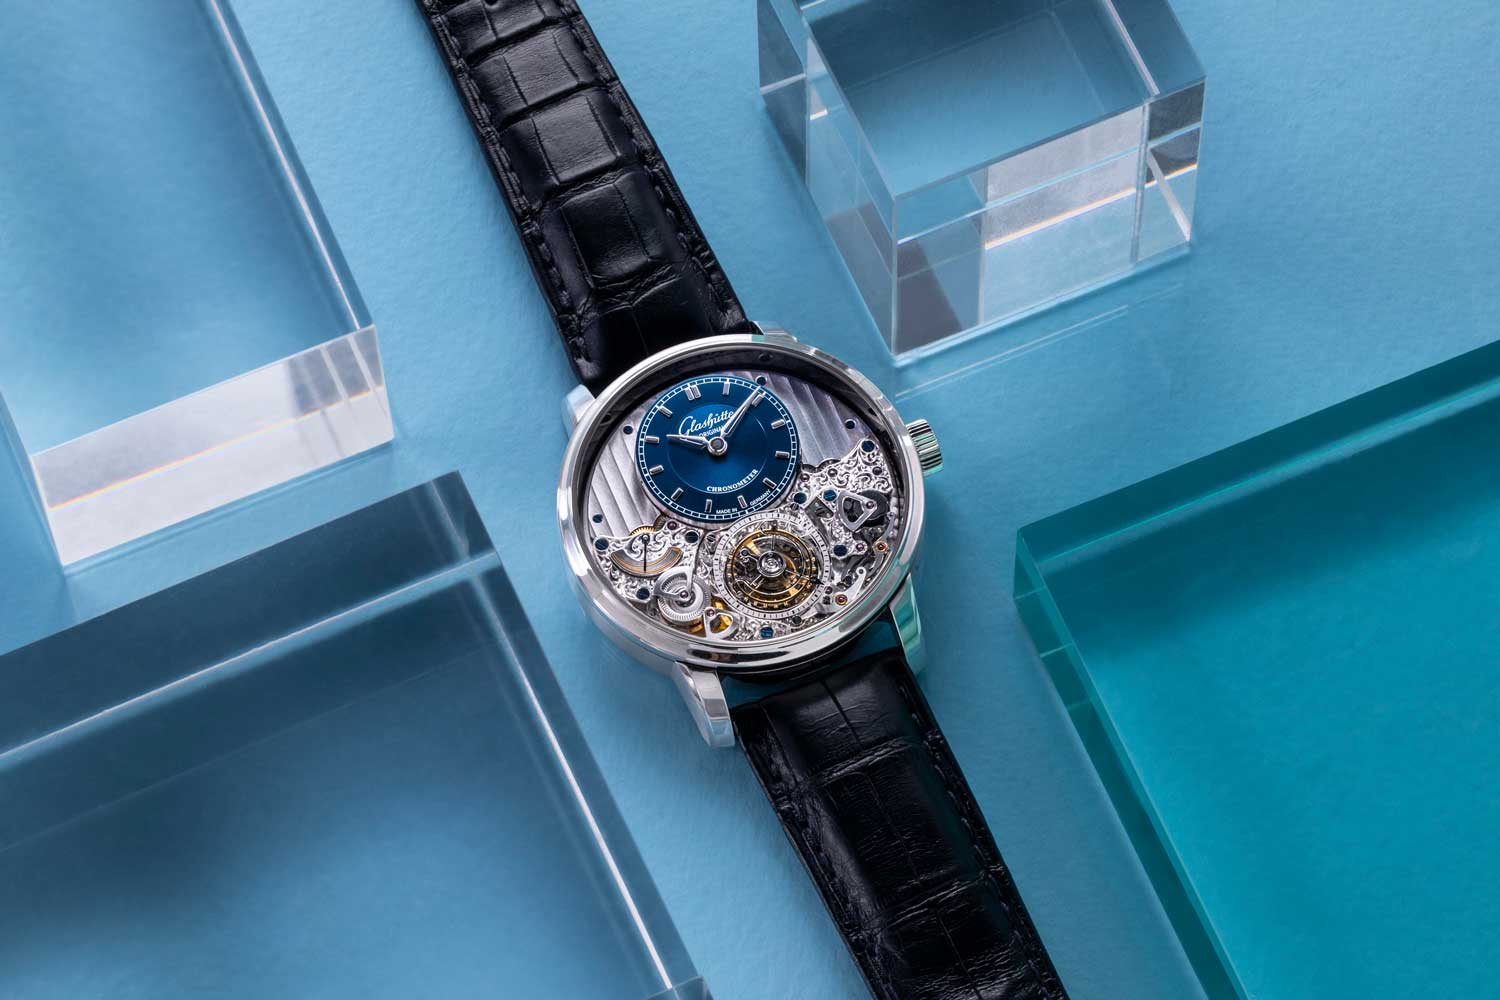 The Glashütte Original Senator Chronometer Tourbillon with flying tourbillon with a stop-second mechanism, zero reset, and minute detent ensuring the watch stays precisely in sync. (©Revolution)